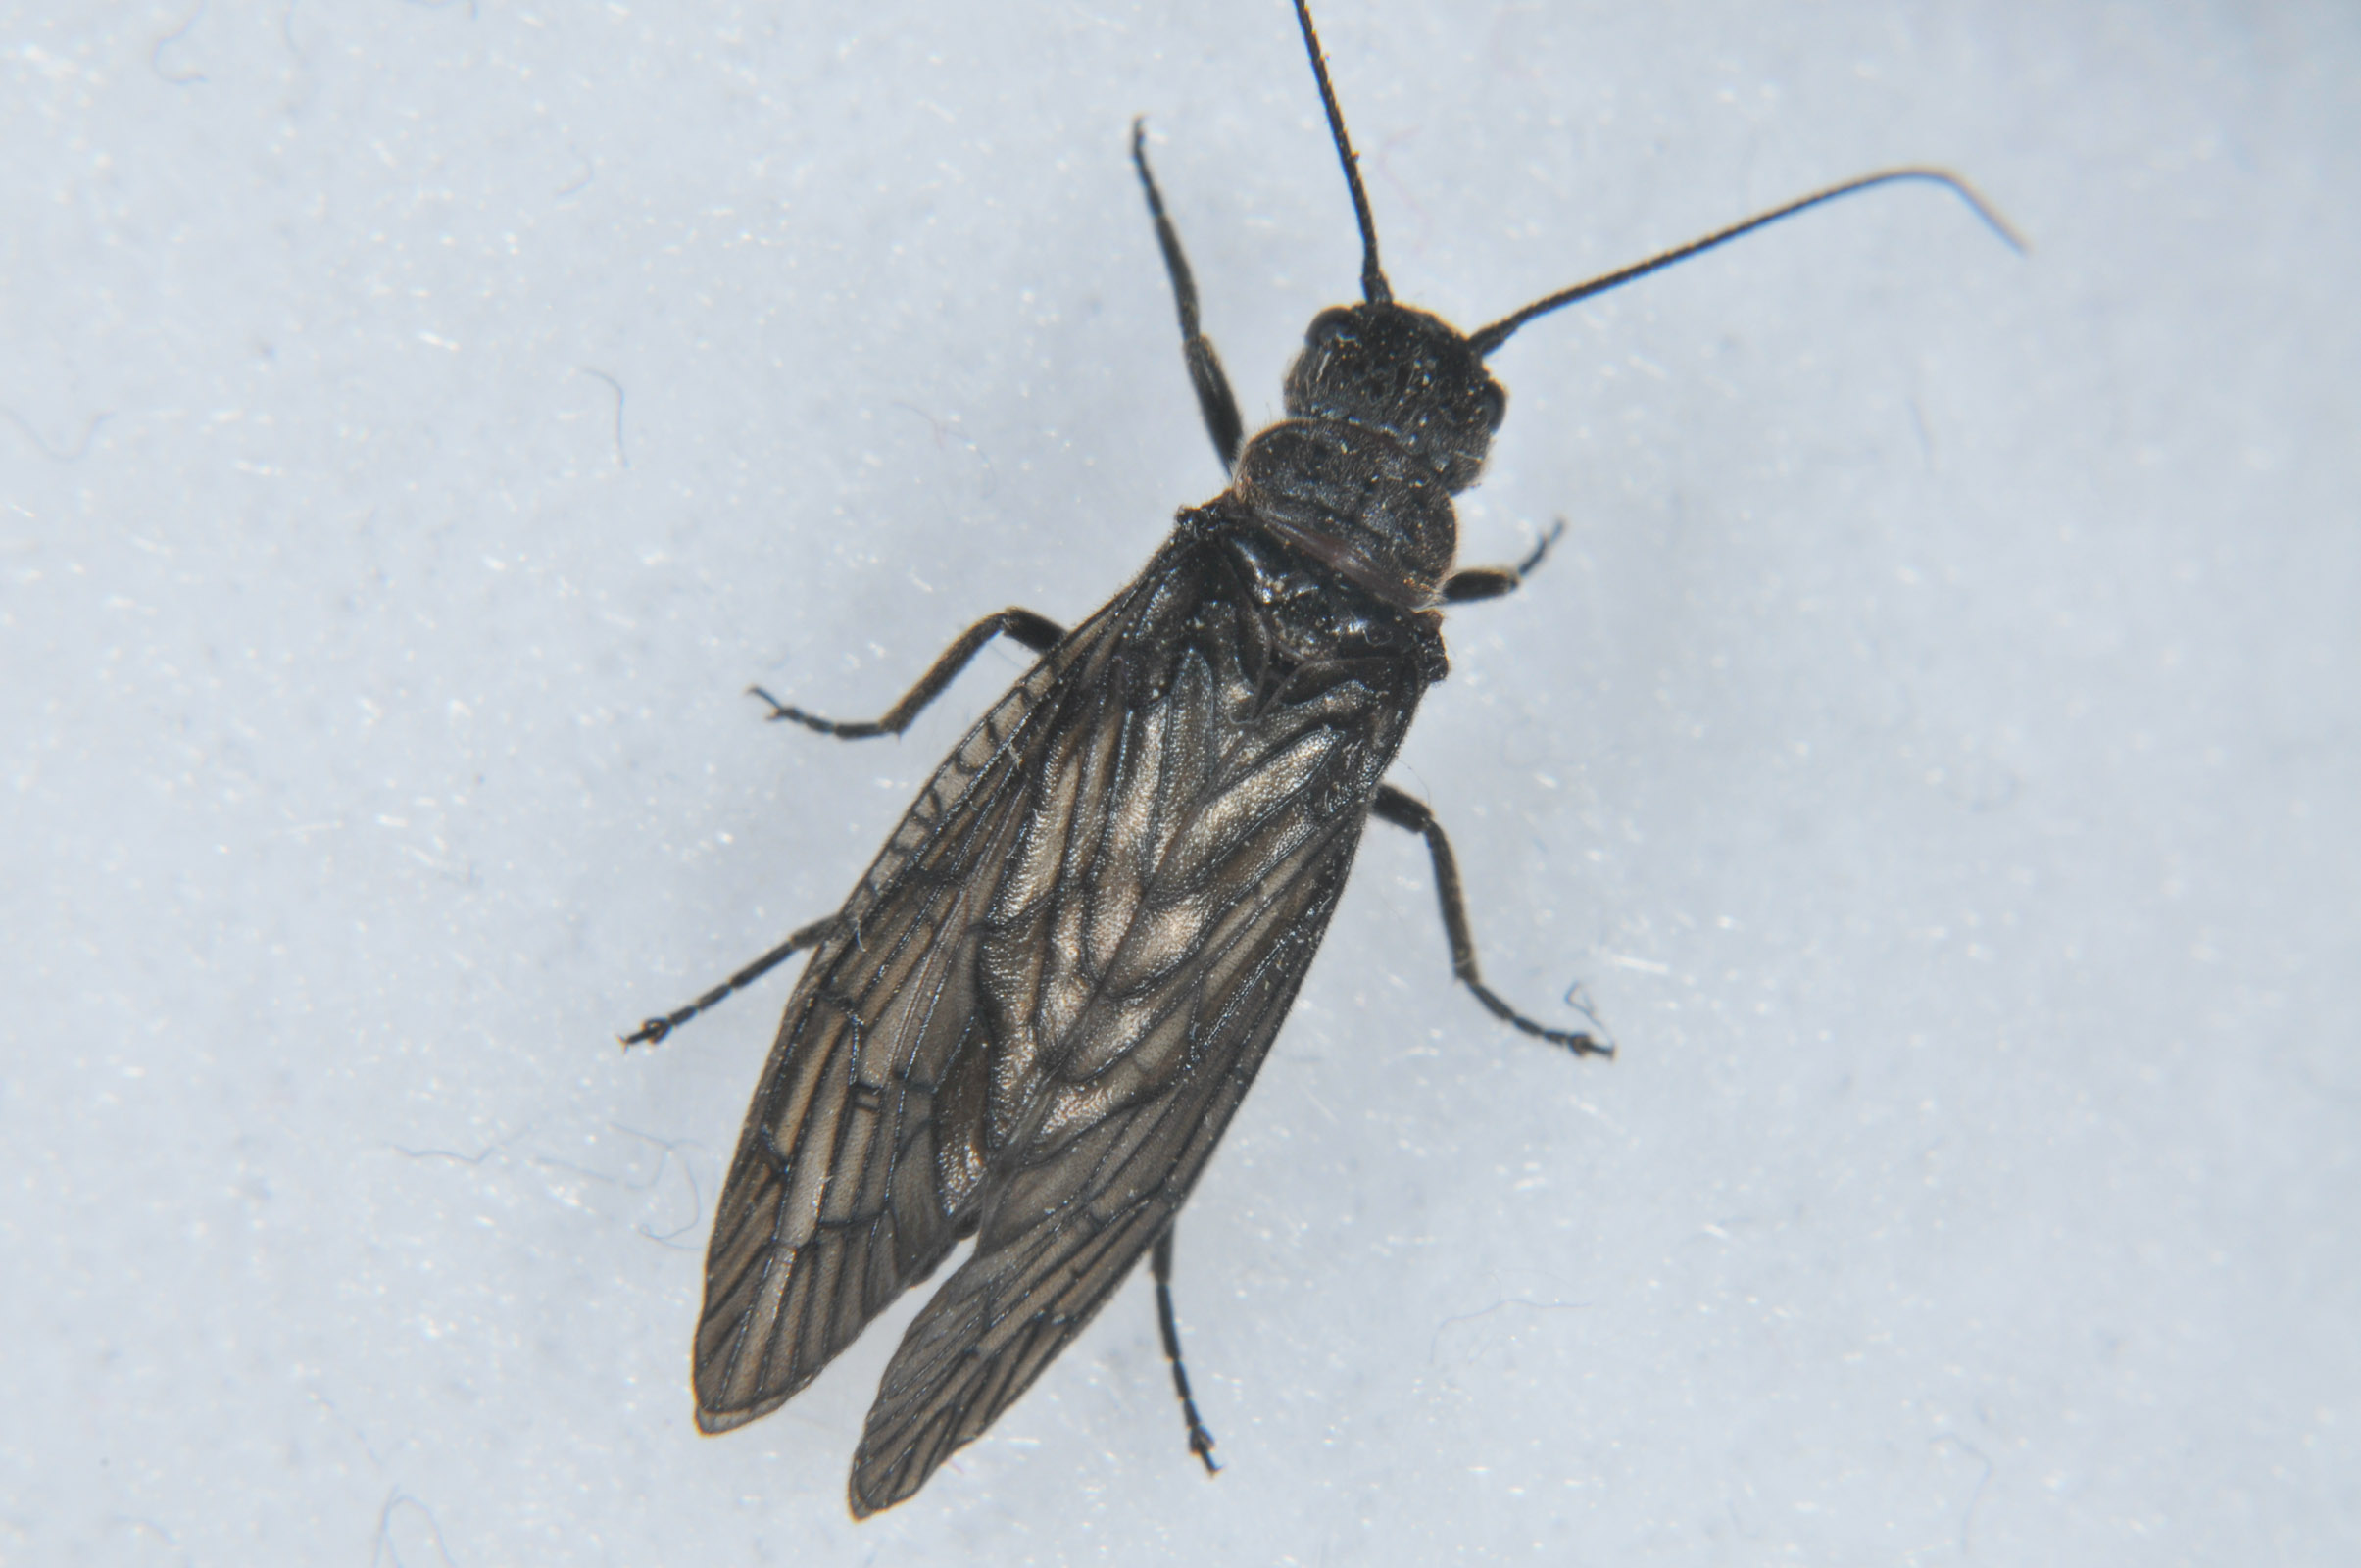 Male Sialis hamata Alderfly Adult from the  Touchet River in Washington